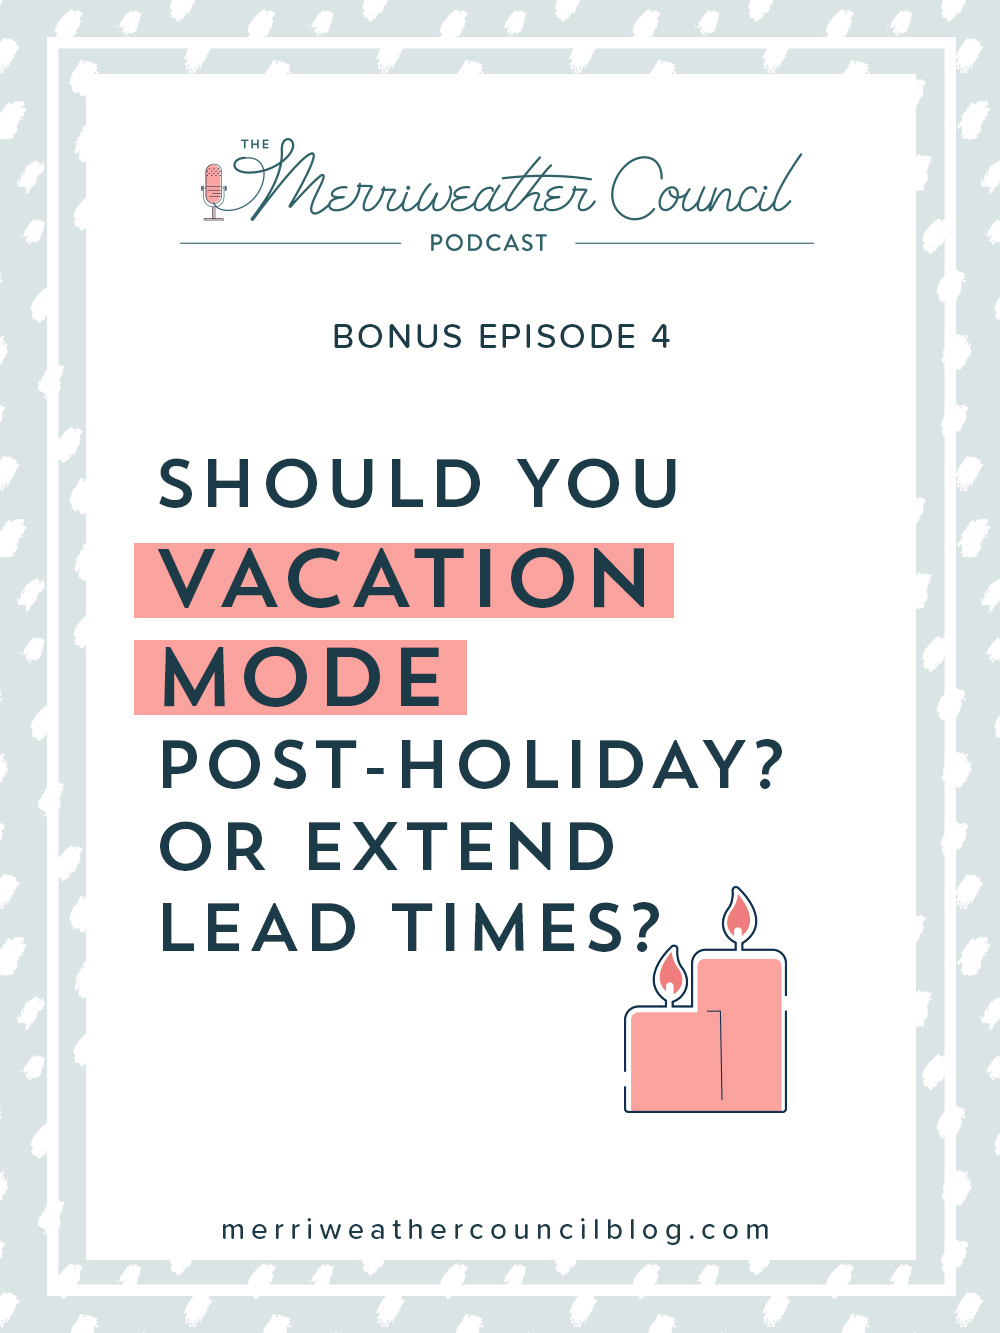 Should you use vacation mode or extend processing times? | the merriweather council podcast